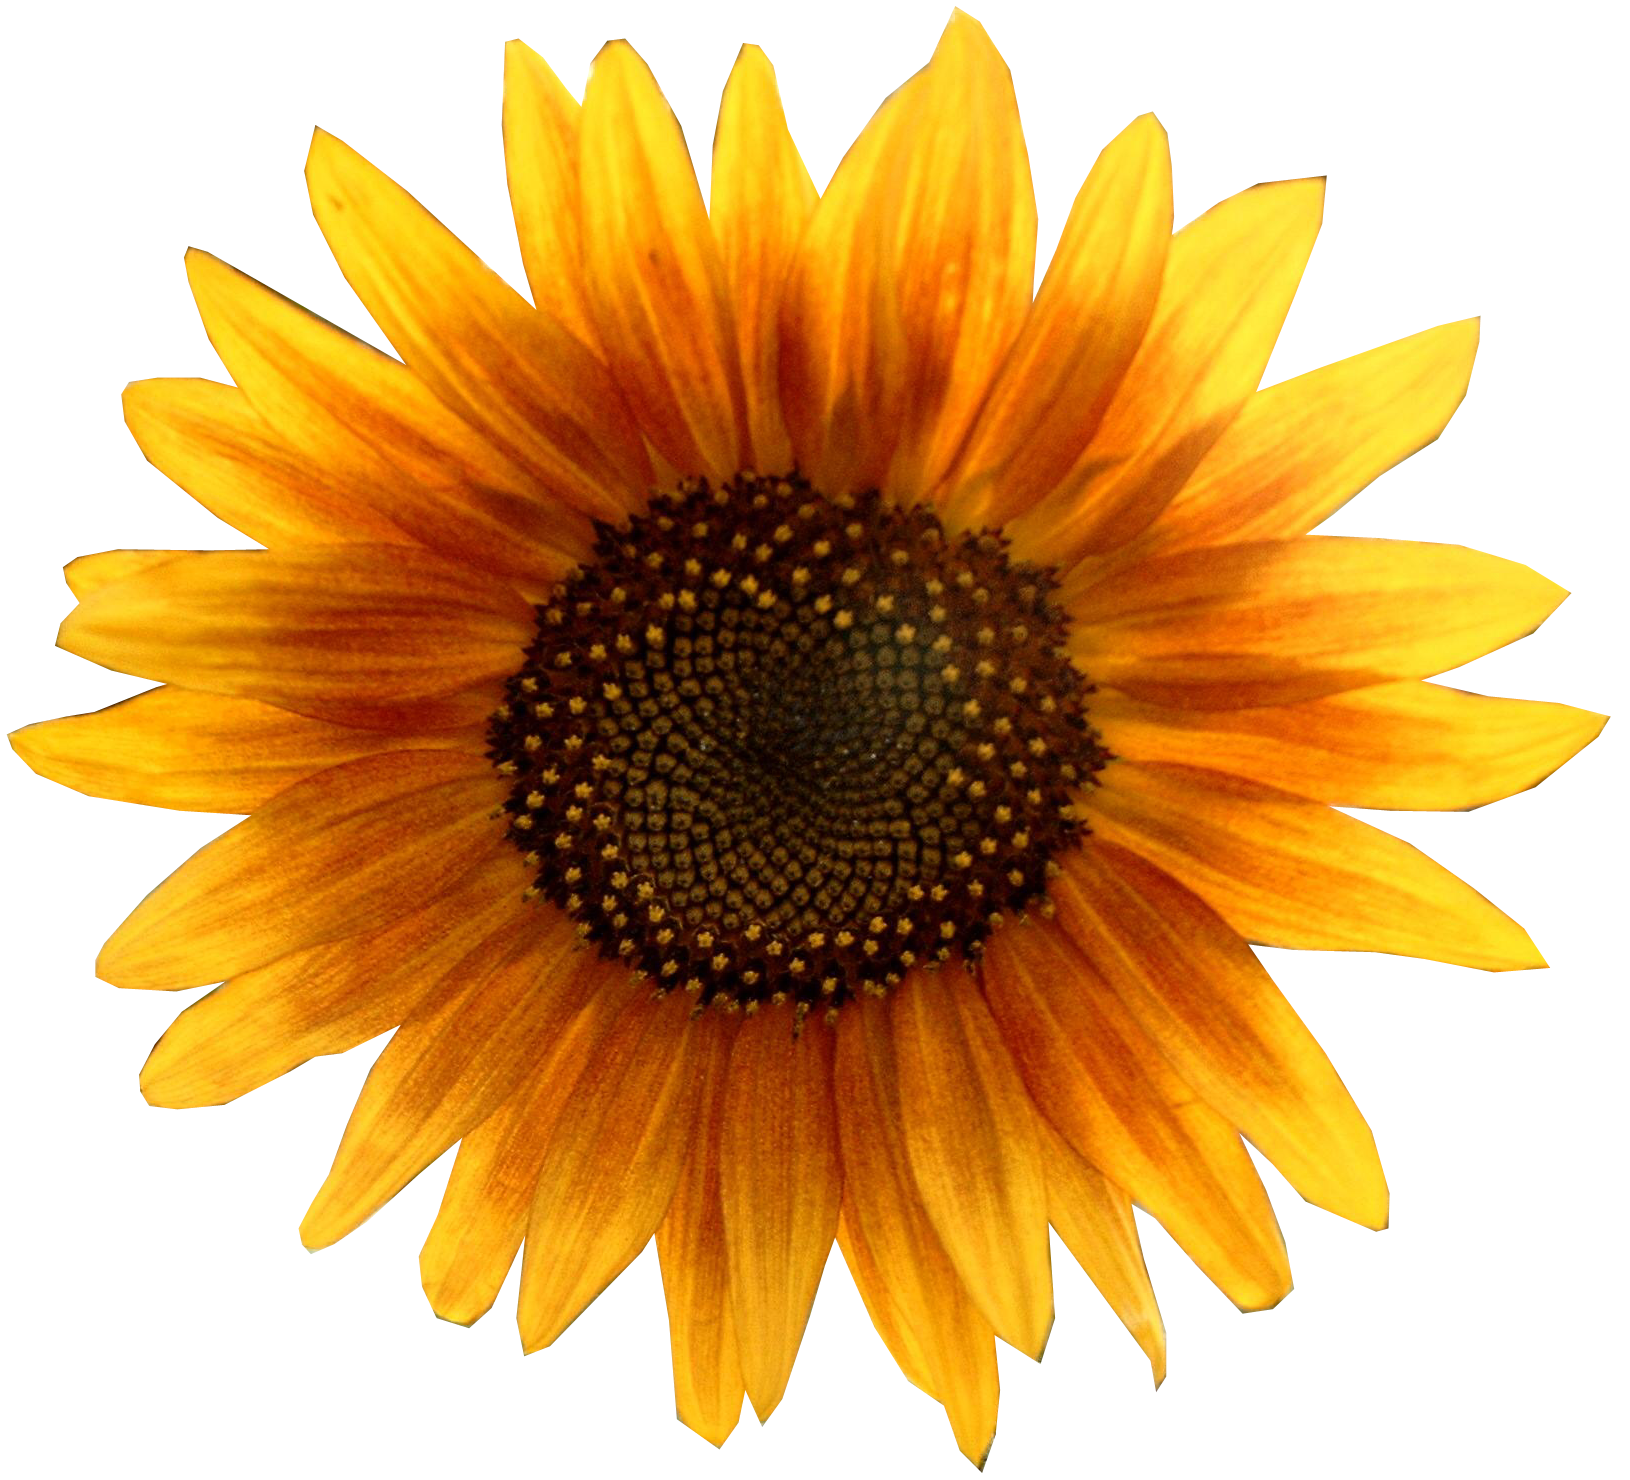 file sunflower metalhead64 edited png sunflower clip art black and white sunflower clip art pictures